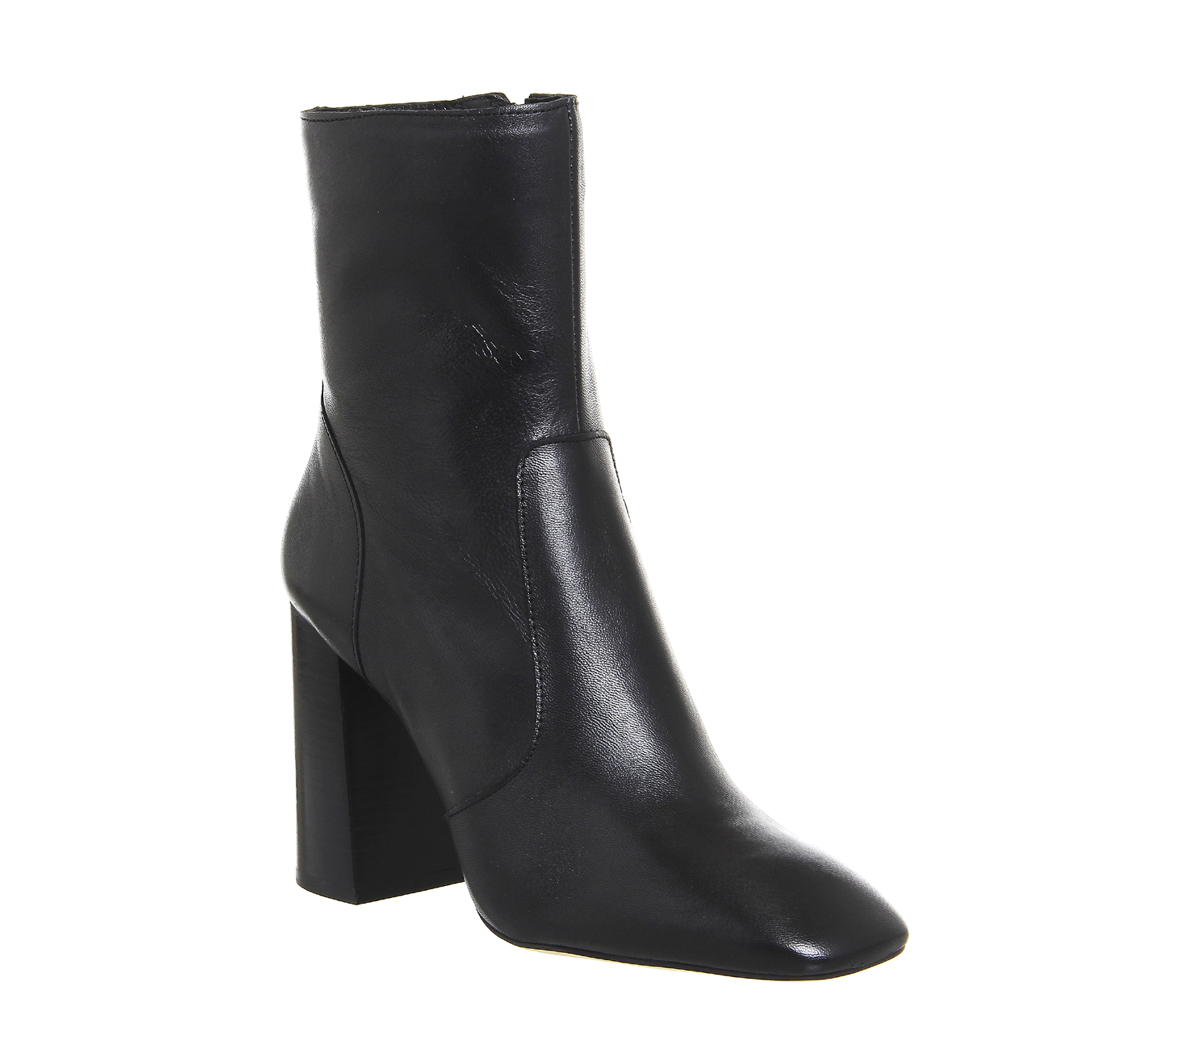 Cut Boots Black Leather - Ankle Boots